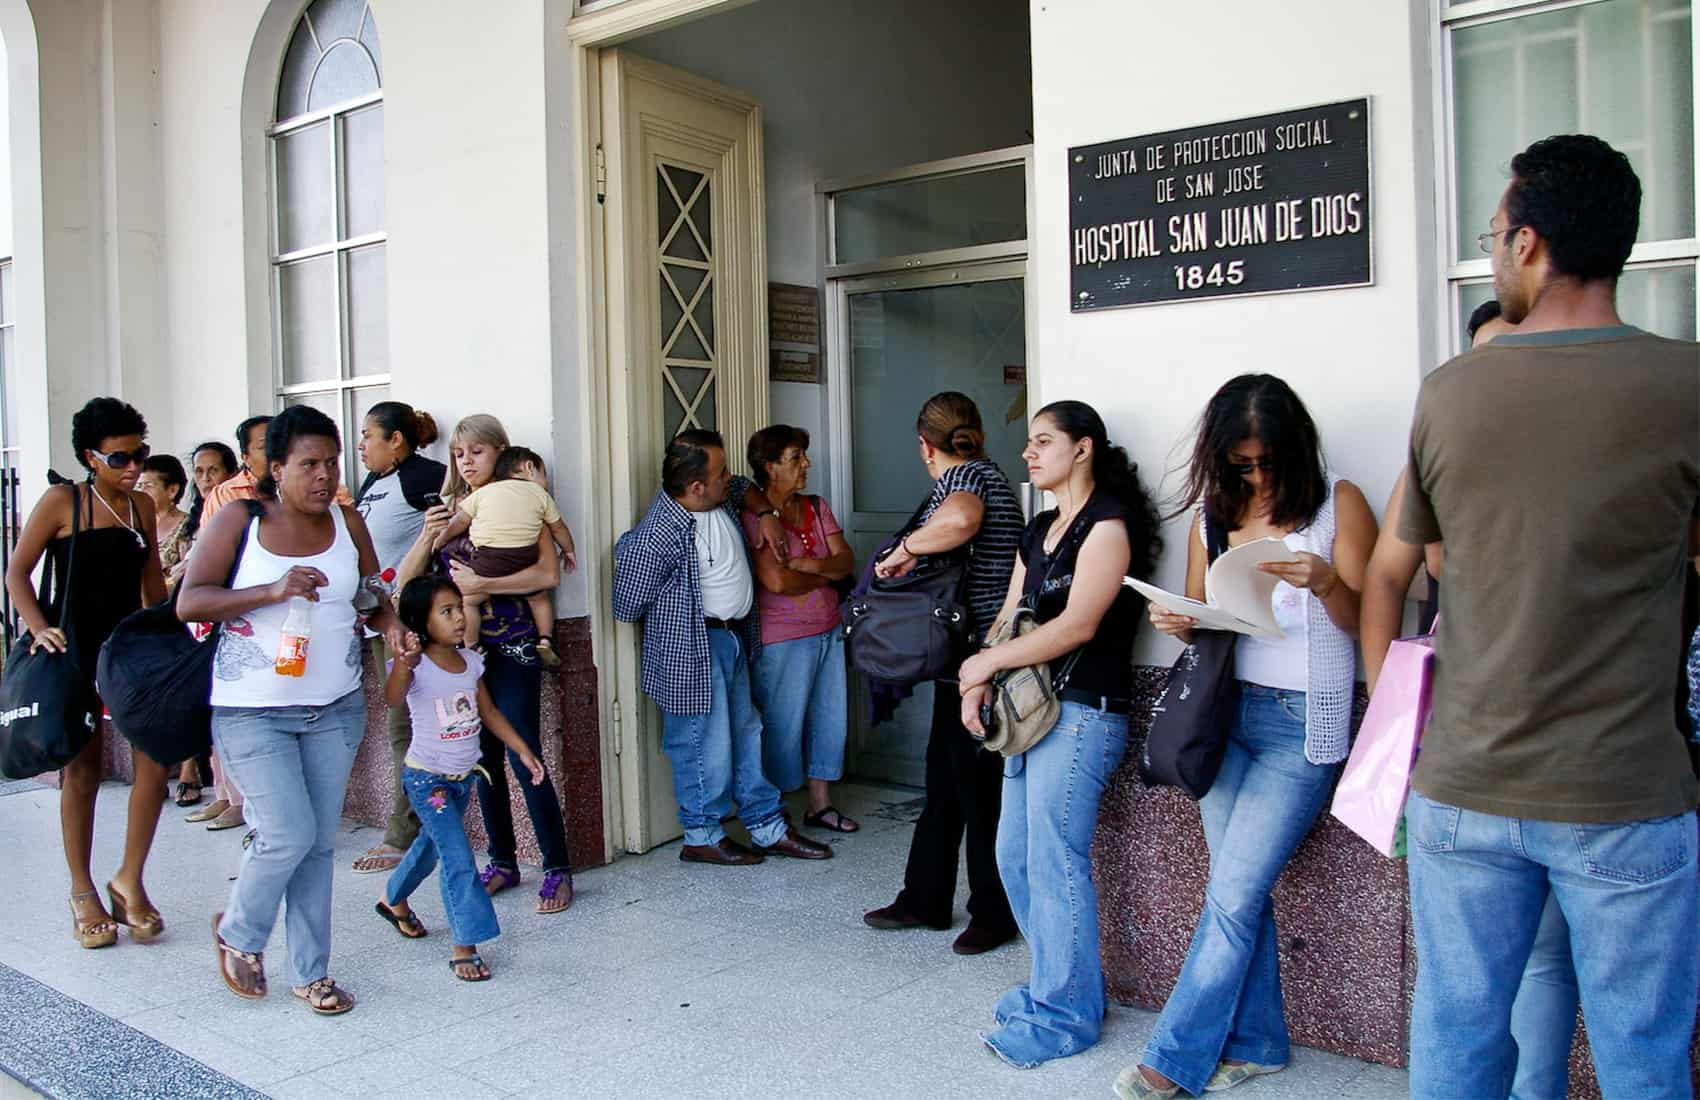 Lines outside public hospitals